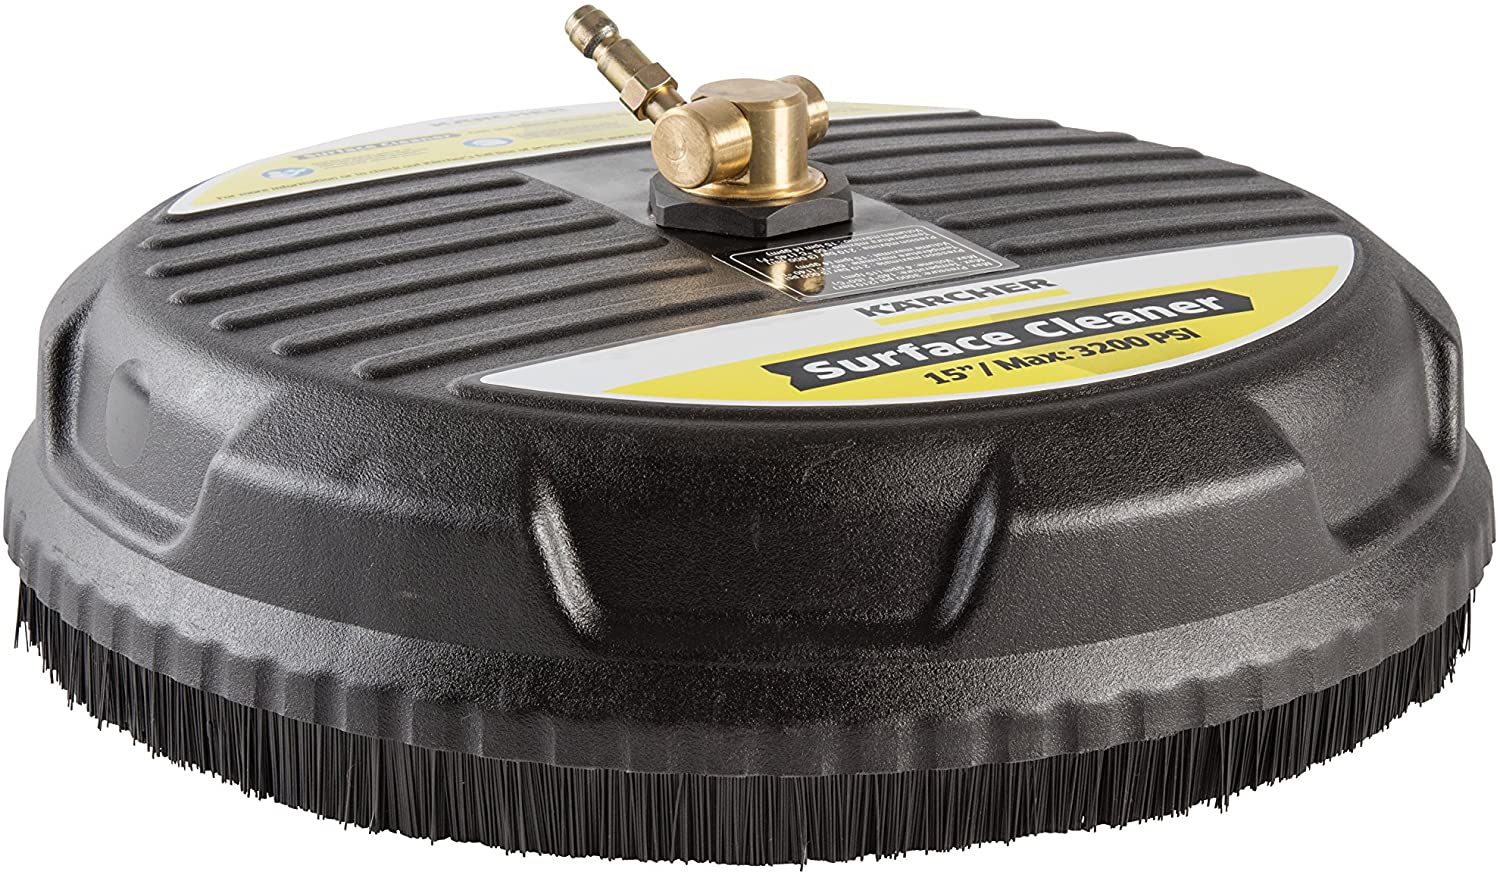 Karcher 15-Inch Pressure Washer Surface Cleaner